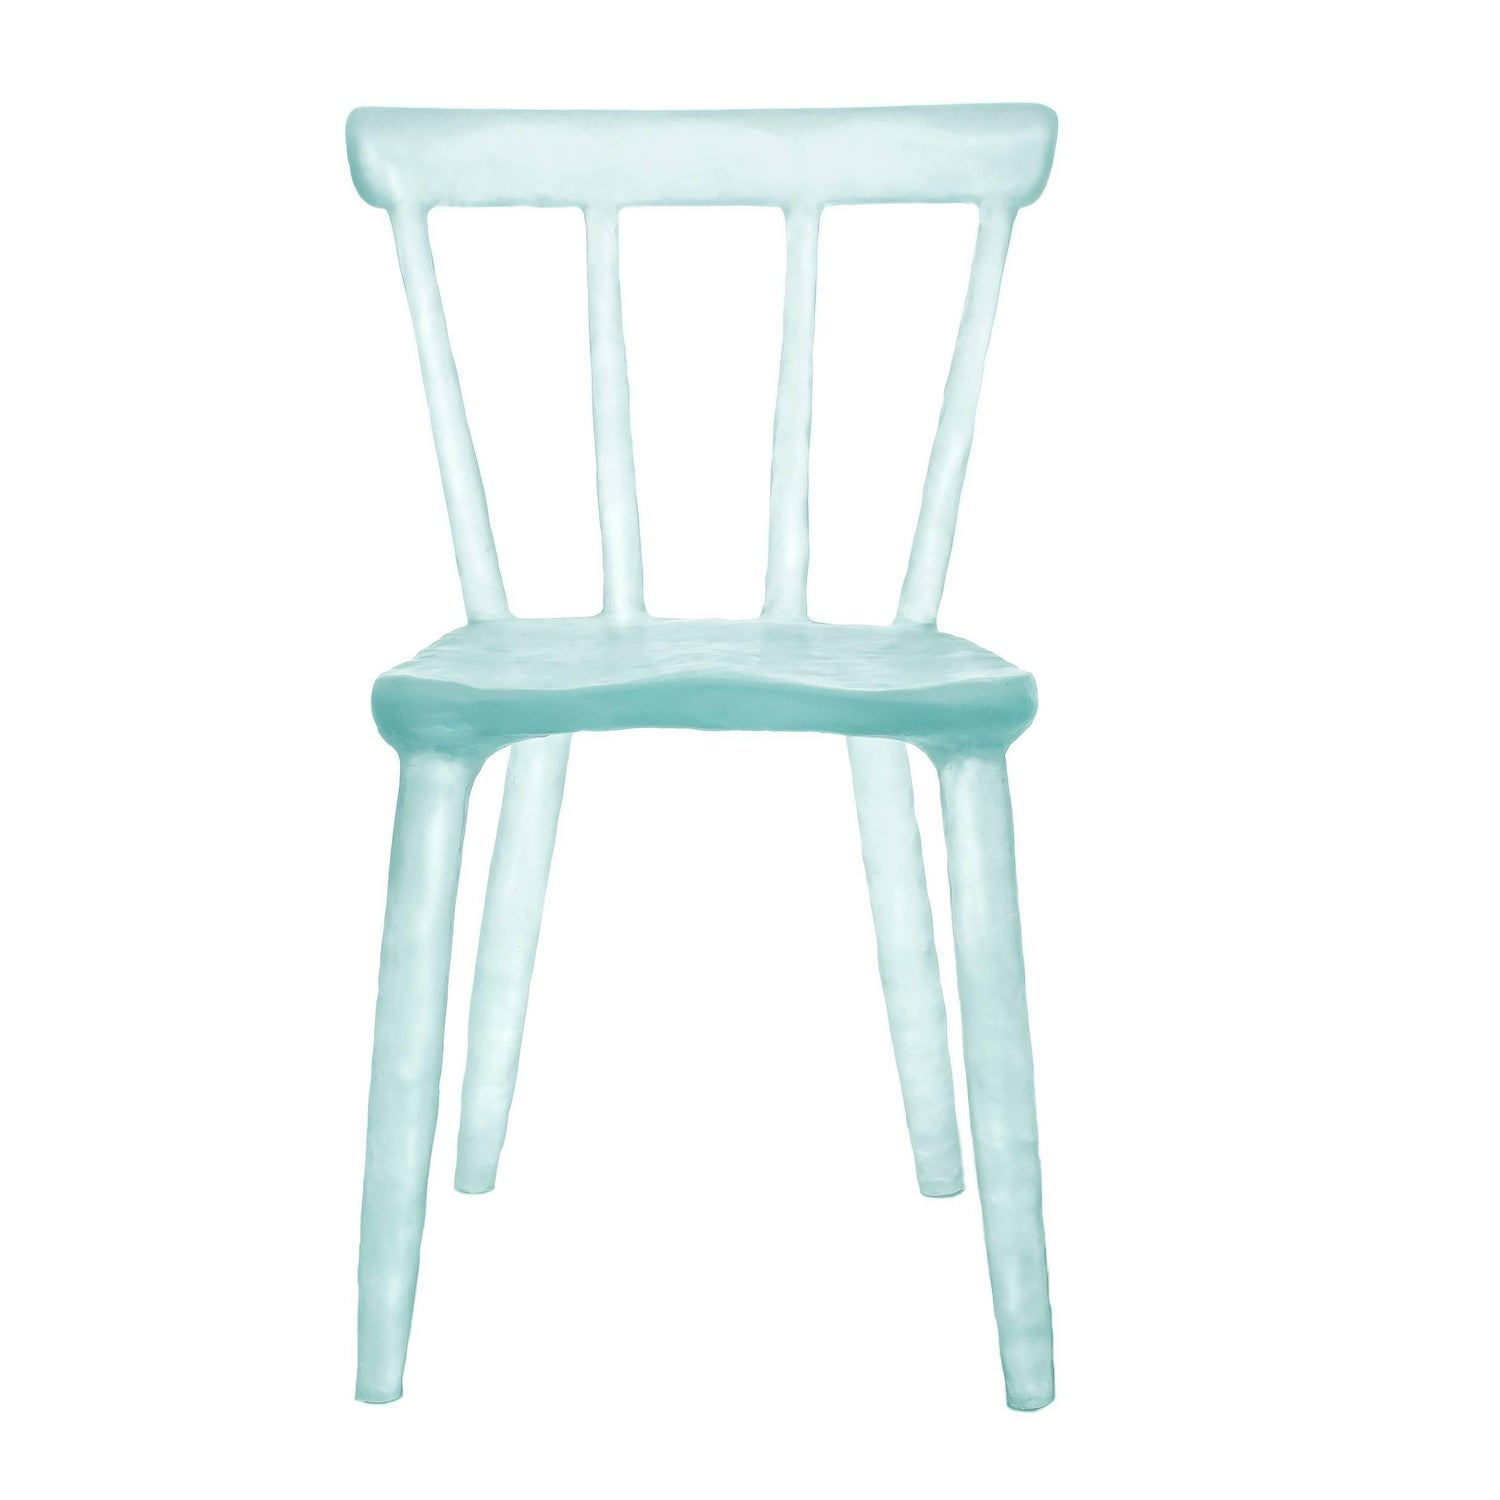 Glow Chair in Aqua Handmade from Cast Recycled Resin Acrylic and